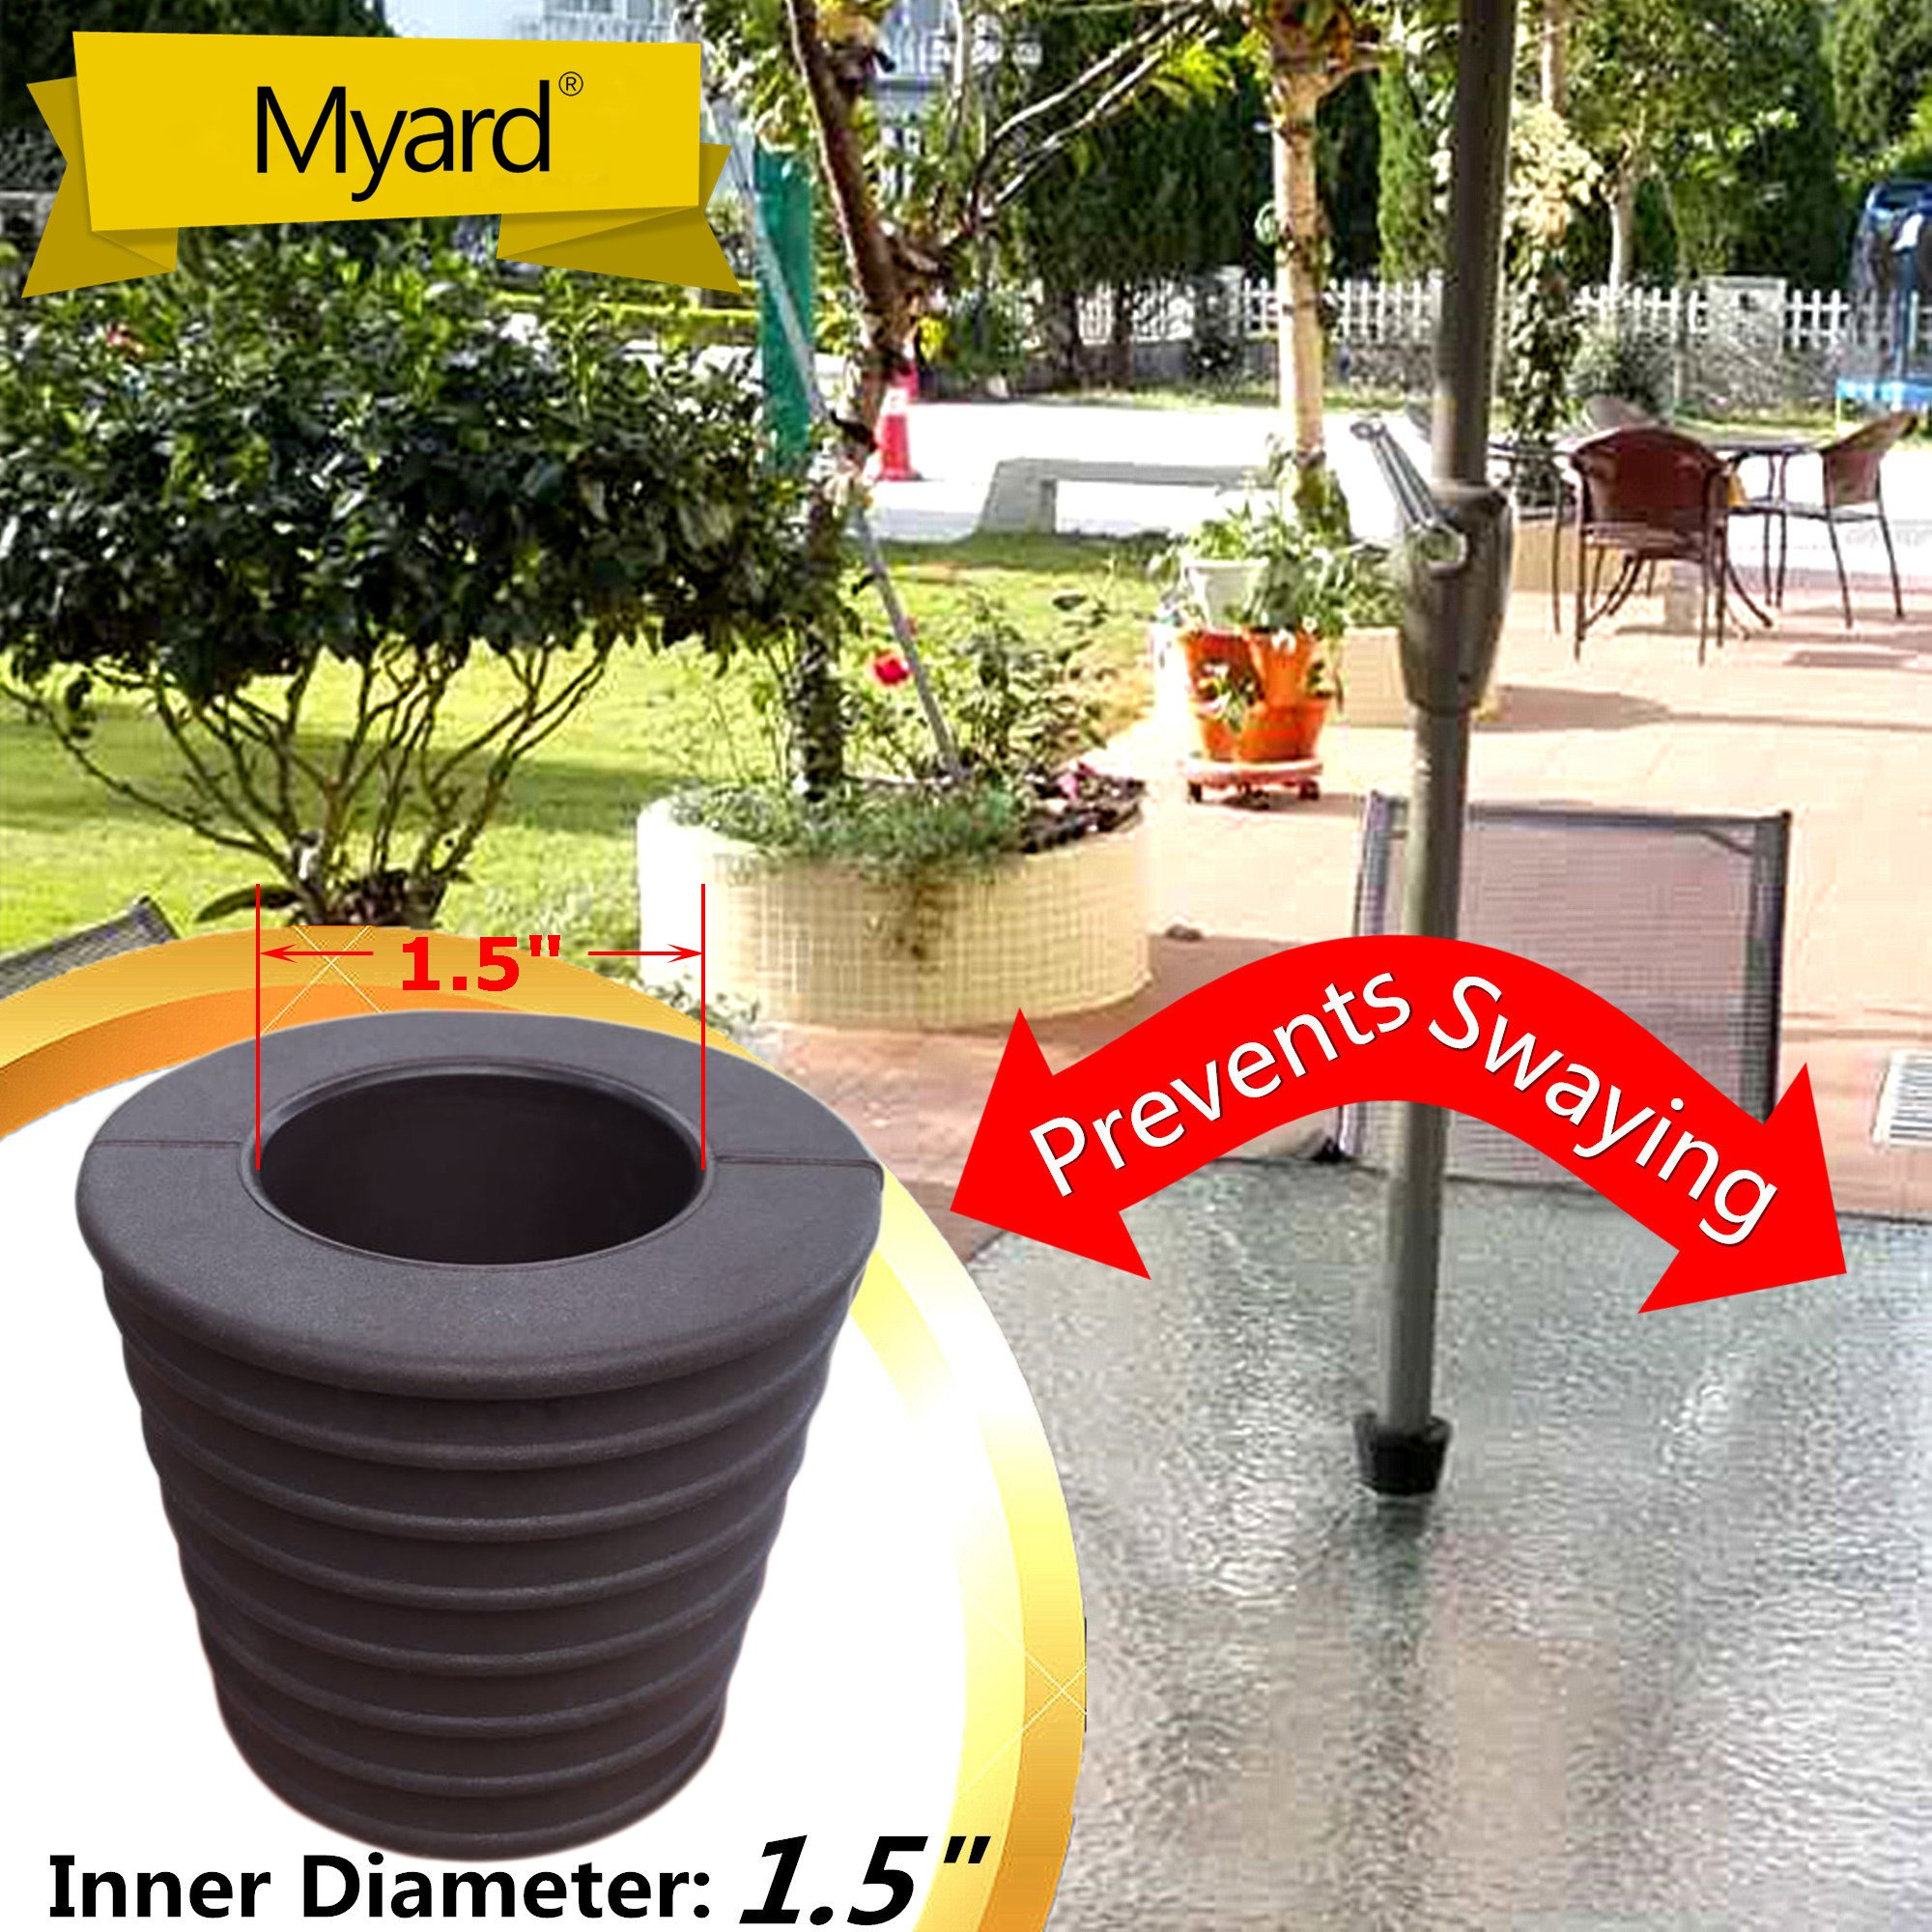 Myard Umbrella Cone Wedge Fits Patio Table Hole Opening Or Base 2 To 5 Inch